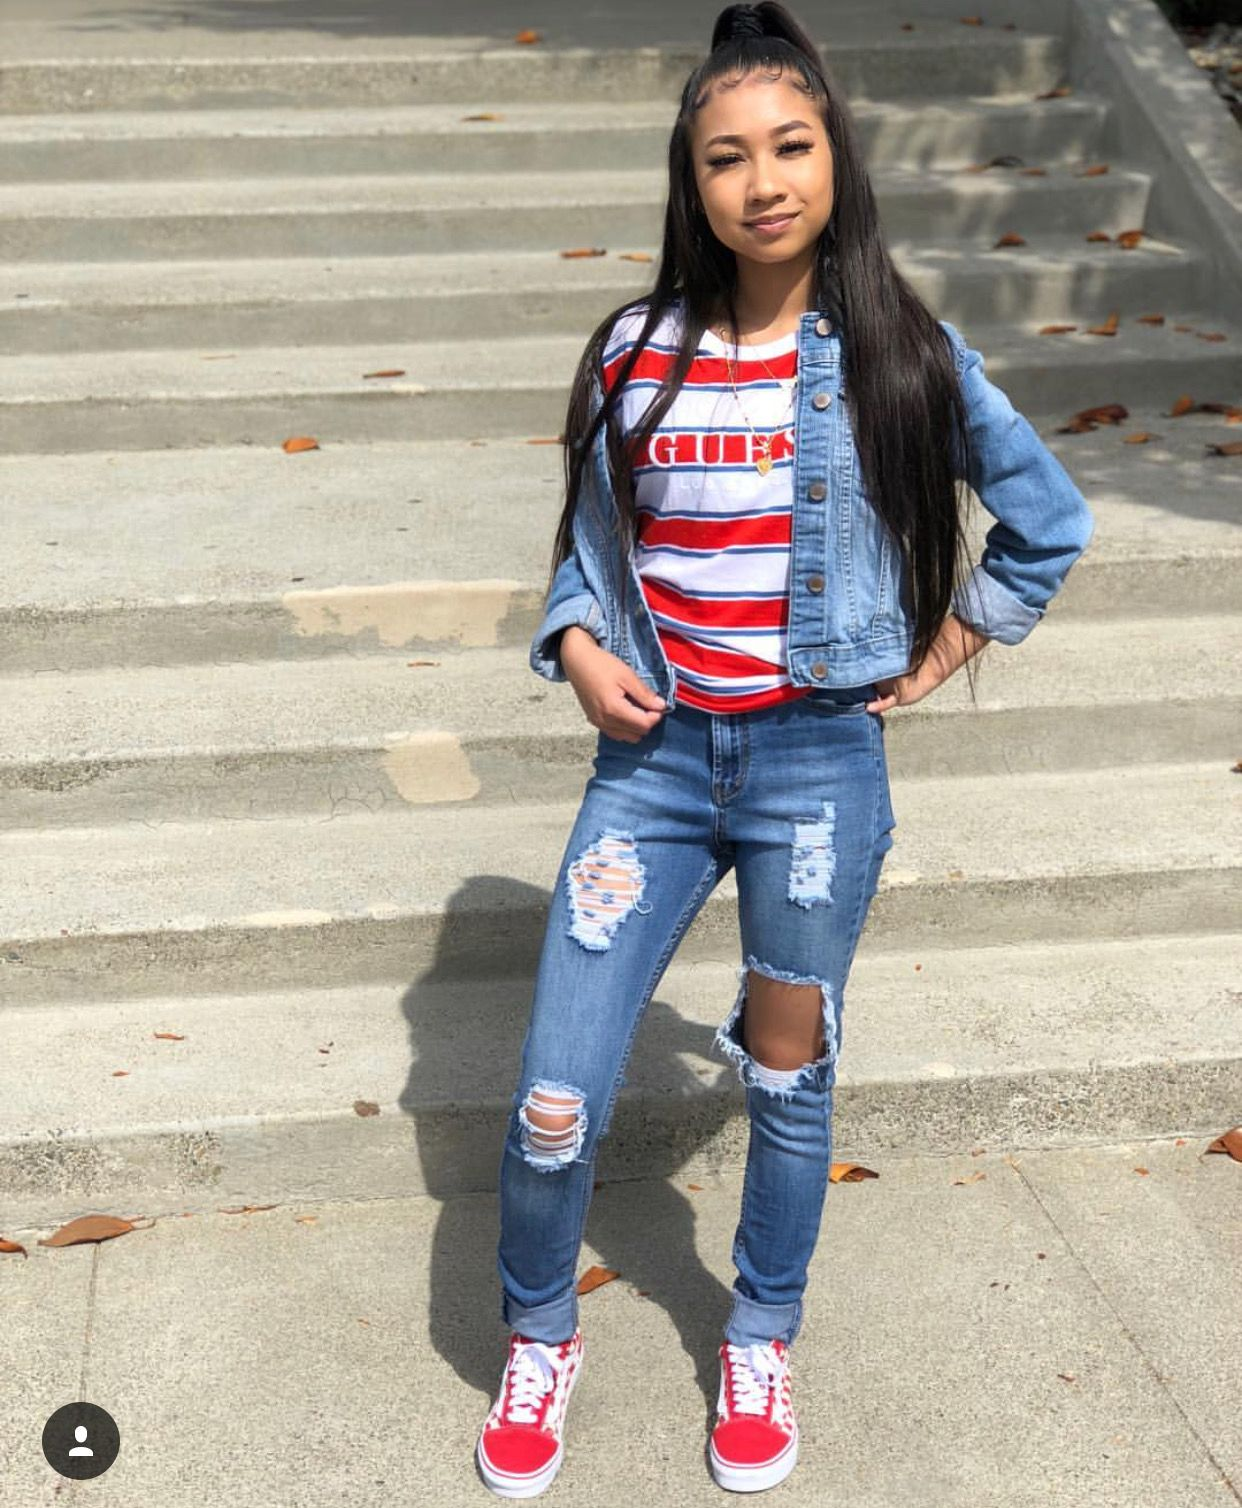 Pin By Dena On Outfit Inspo Cute Outfits High School Outfits